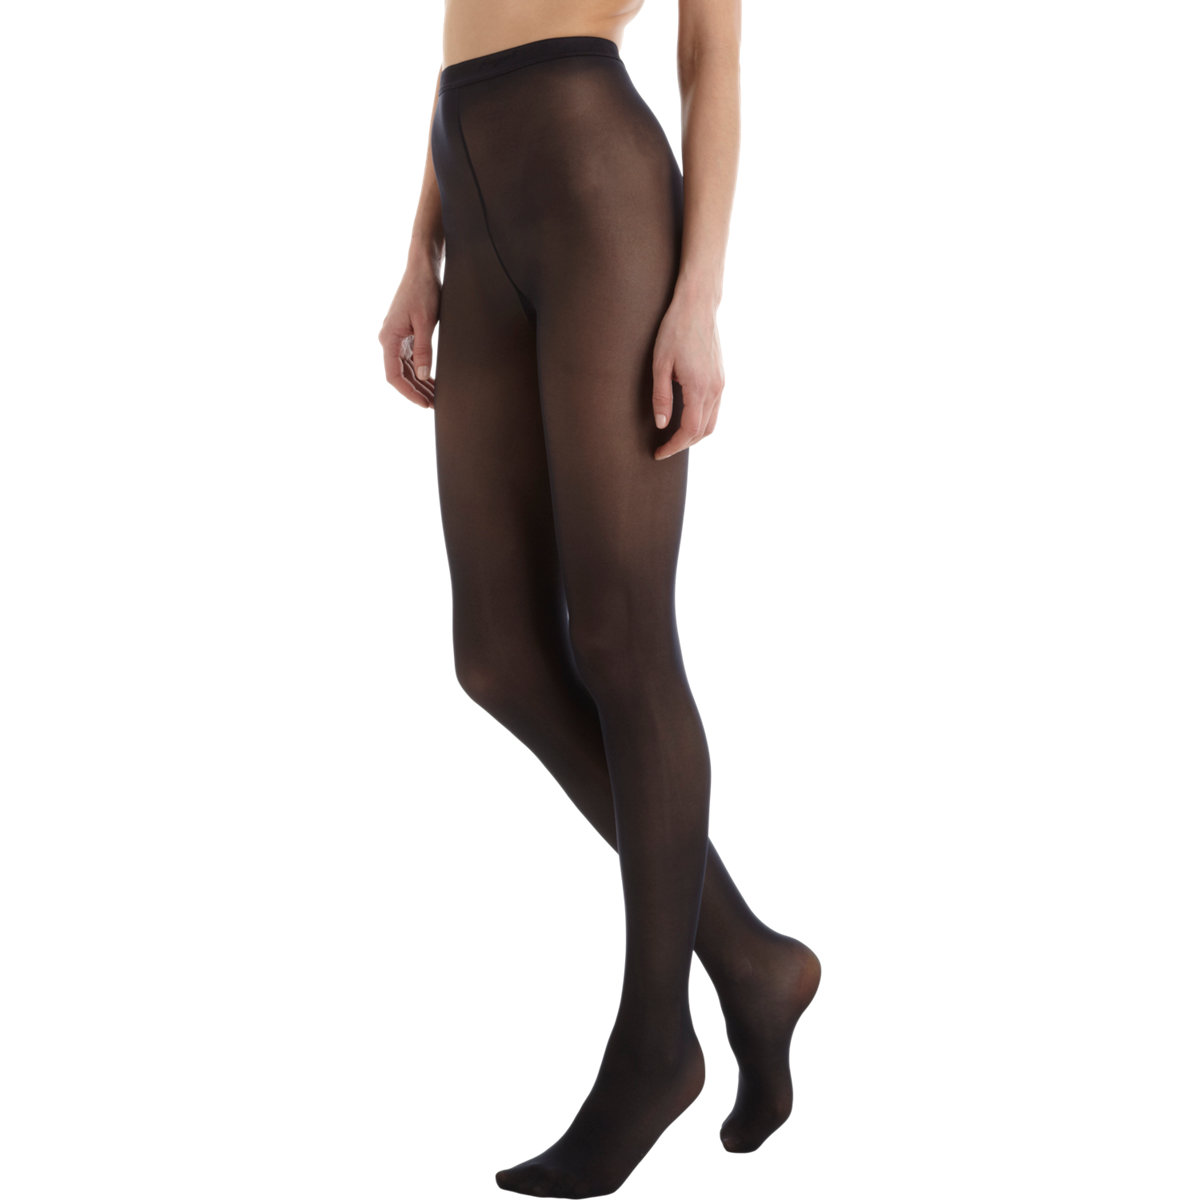 Find great deals on eBay for opaque tights. Shop with confidence.